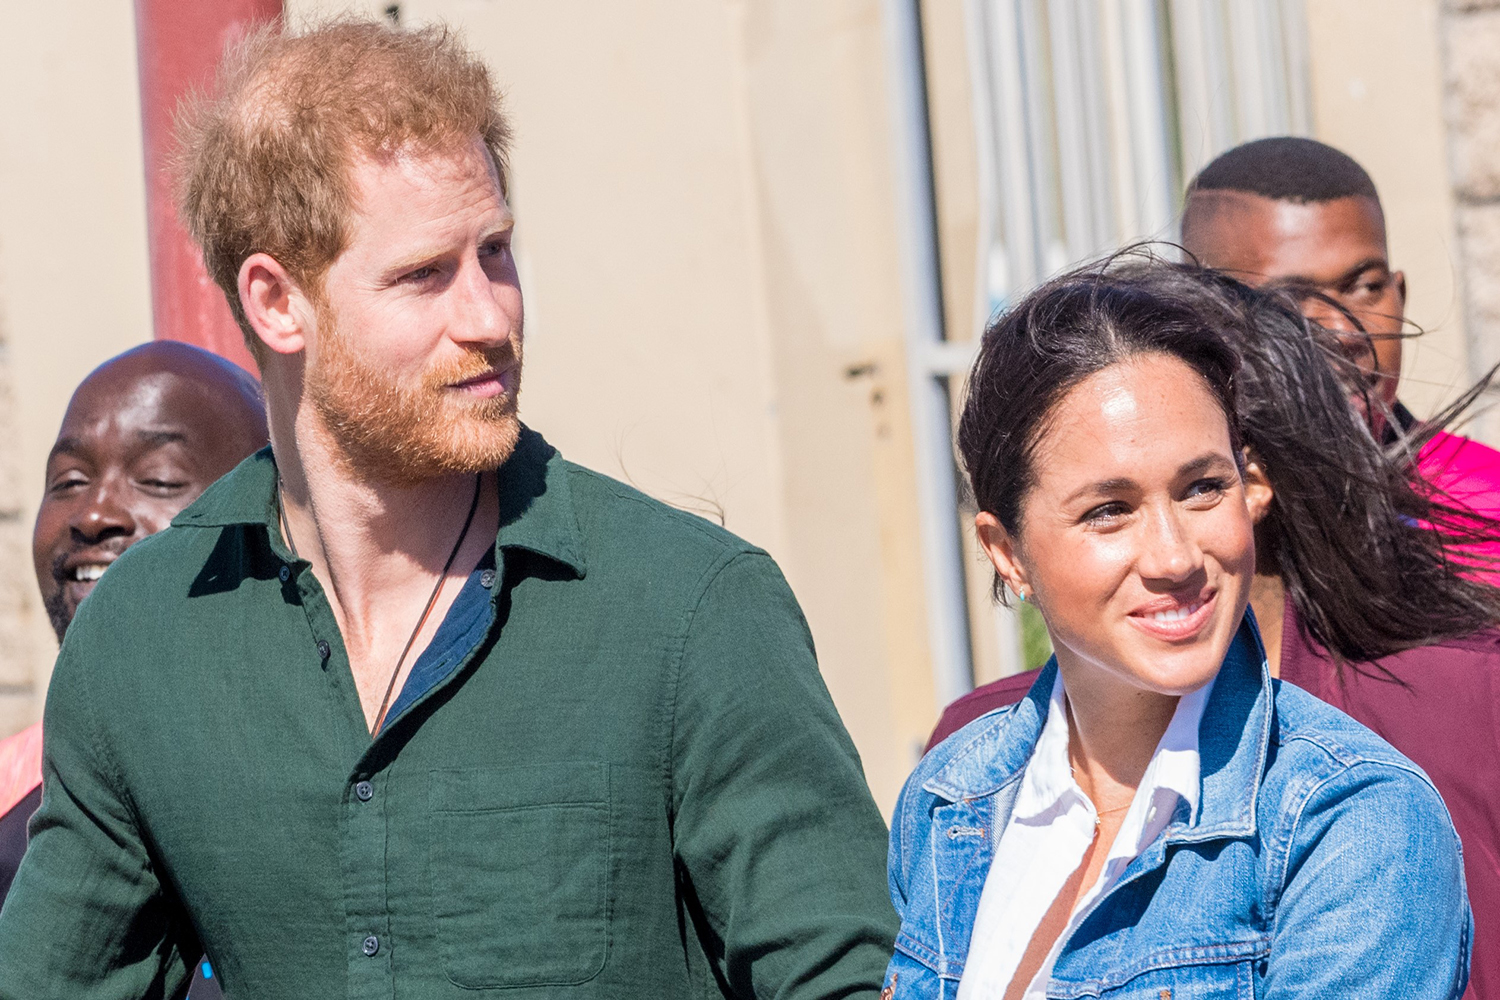 Meghan and Harry just faced another public blow